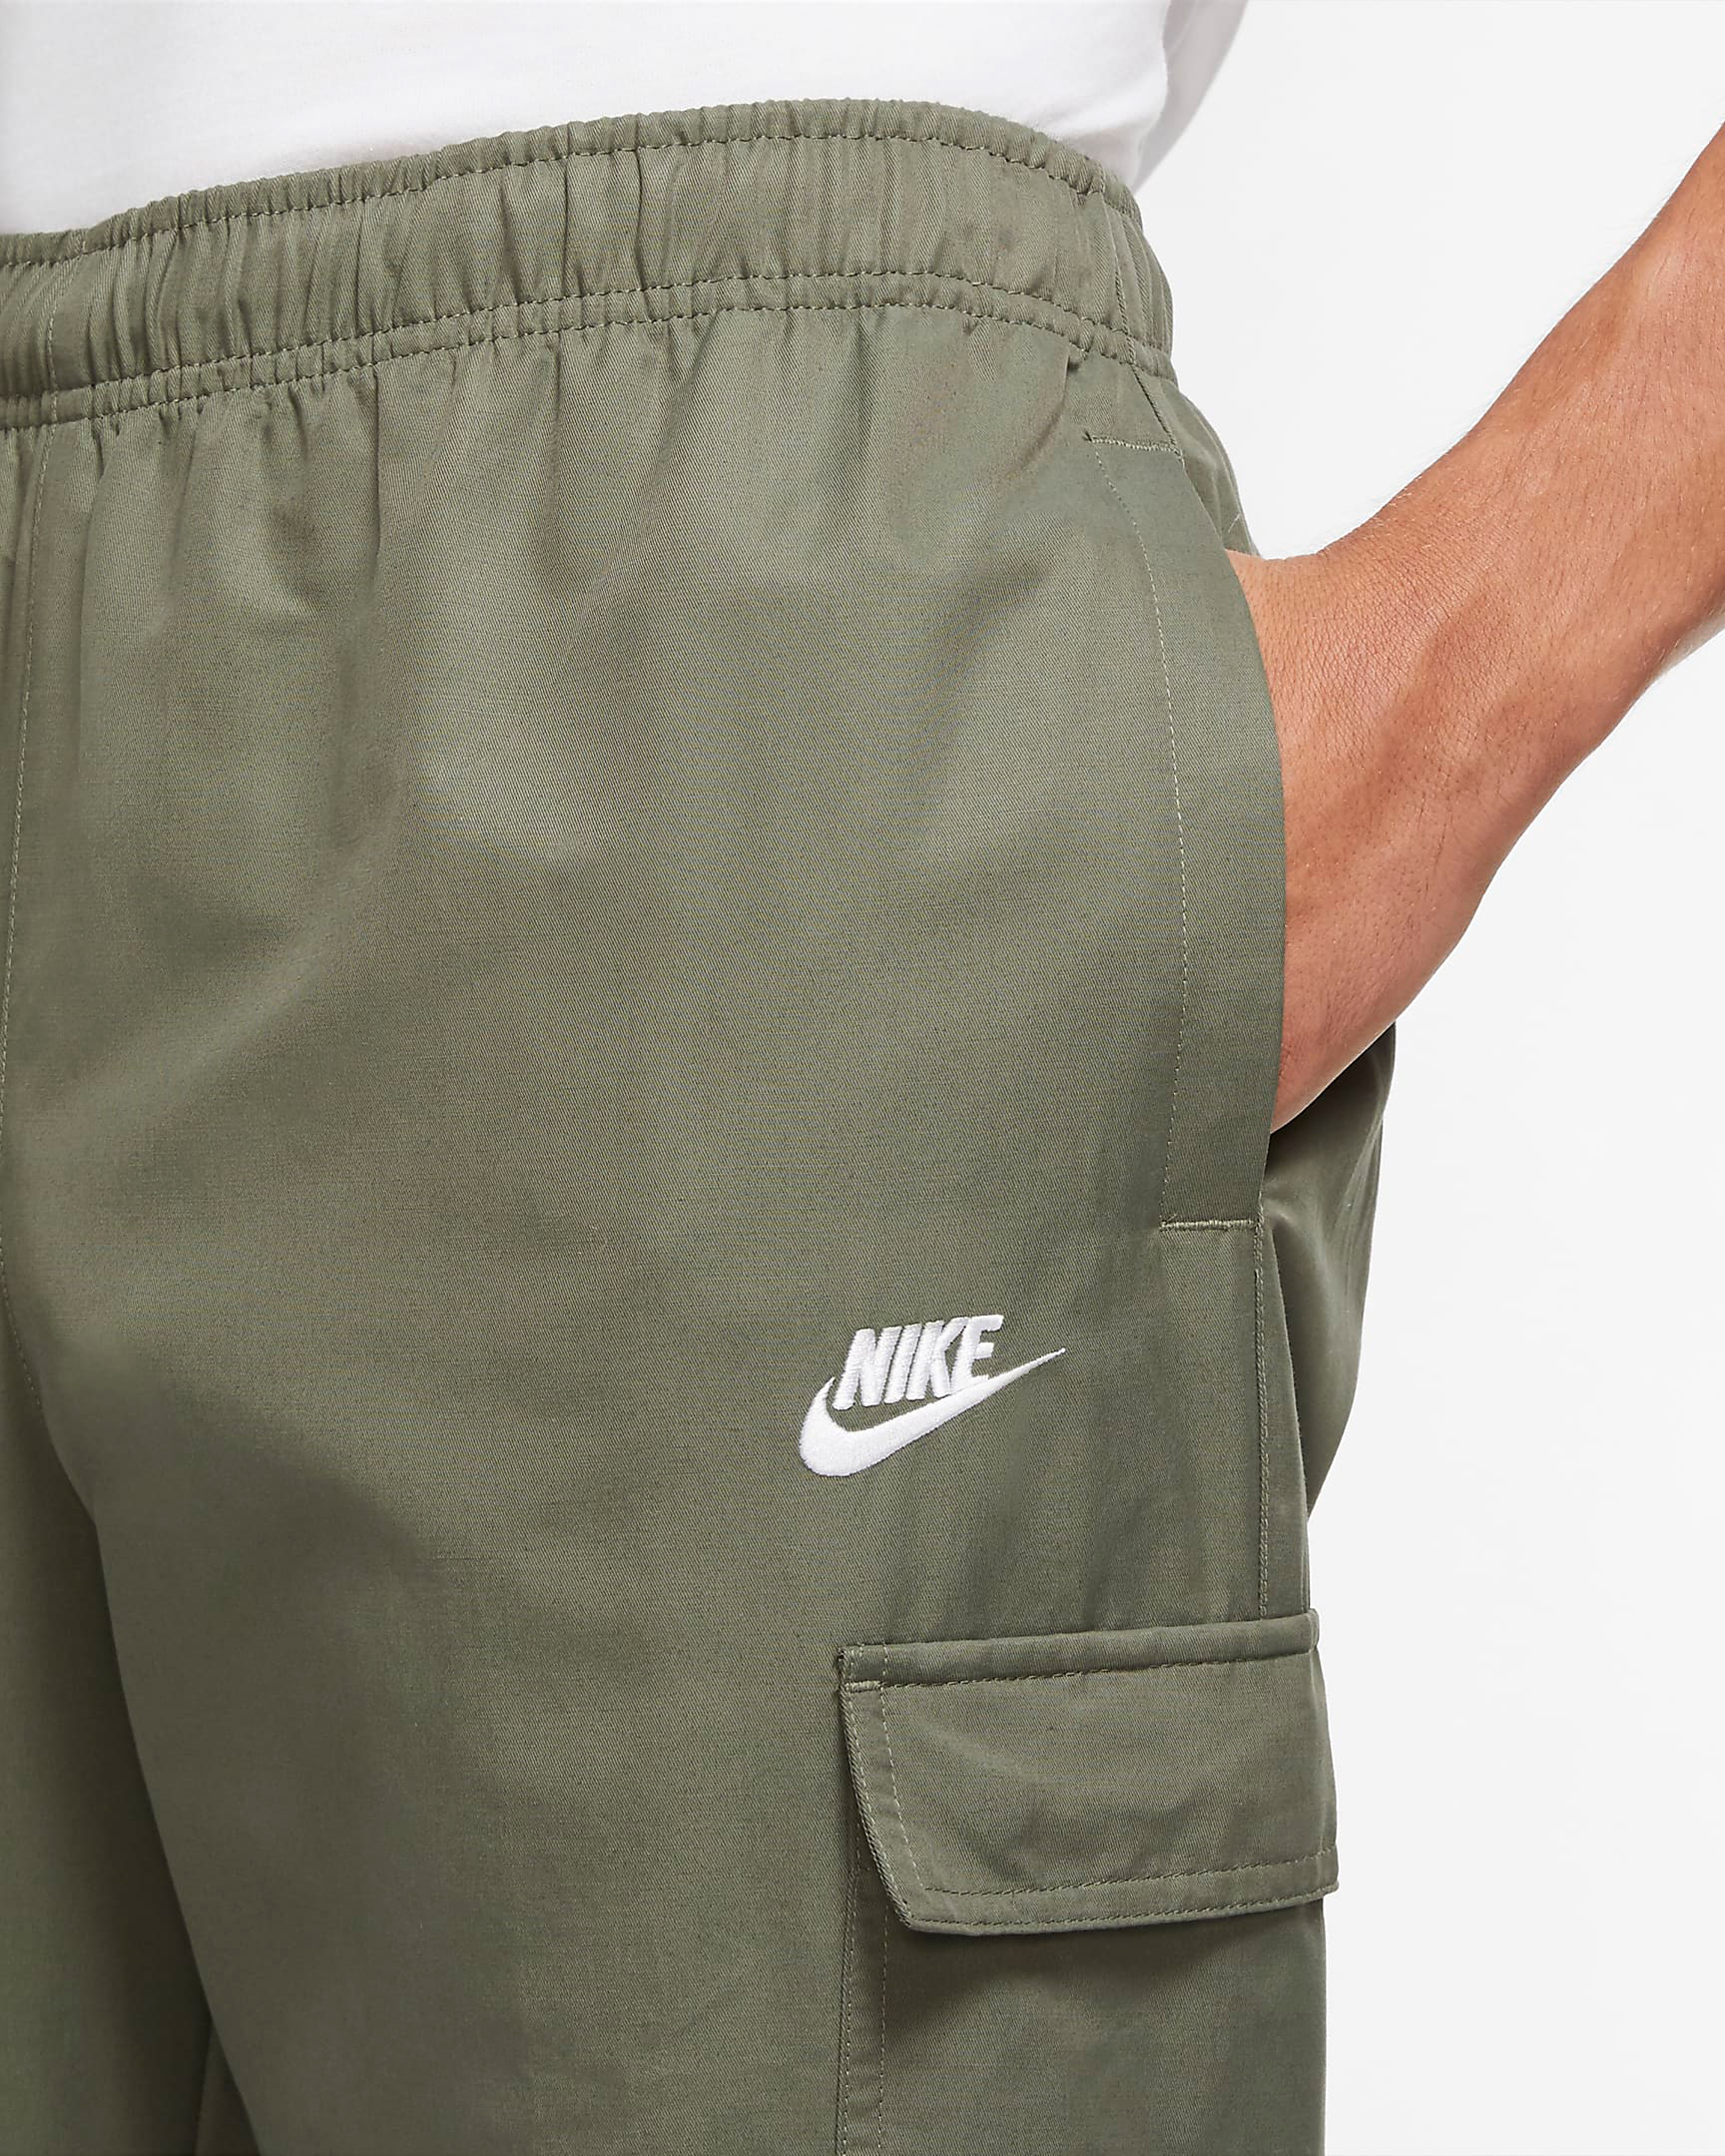 nike-air-tuned-max-celery-cargo-pants-2